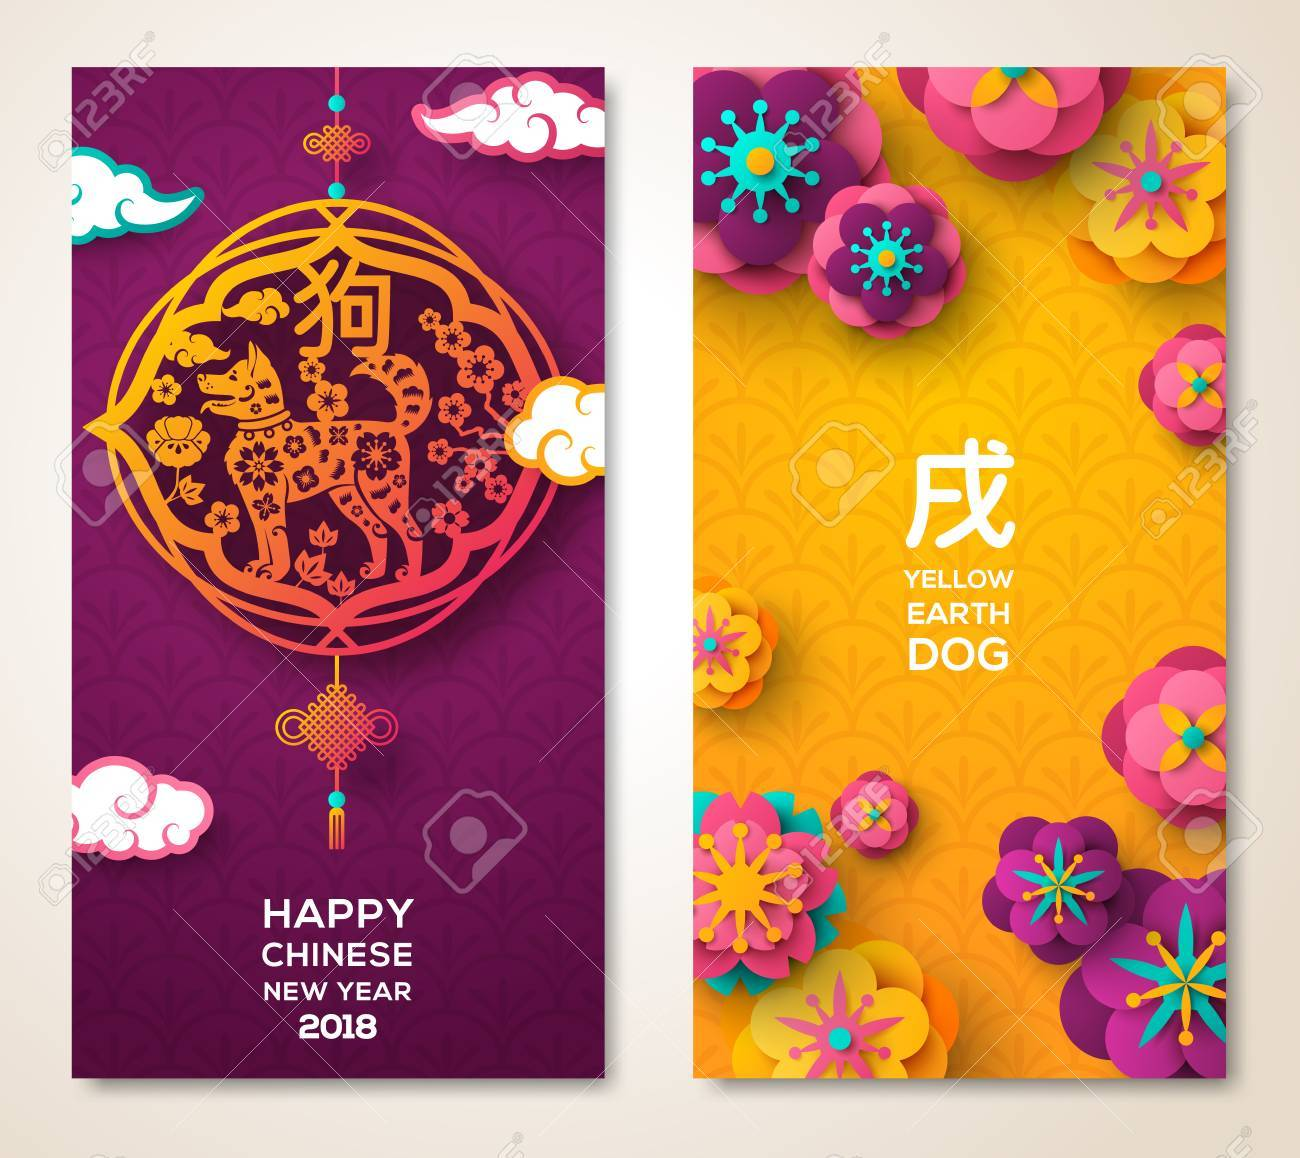 2018 Chinese New Year Greeting Card, two sides poster, flyer or invitation design with Paper cut Sakura Flowers. Vector illustration. Hieroglyphs Dog. Traditional Chinese Decoration with Luck Knots - 89106584